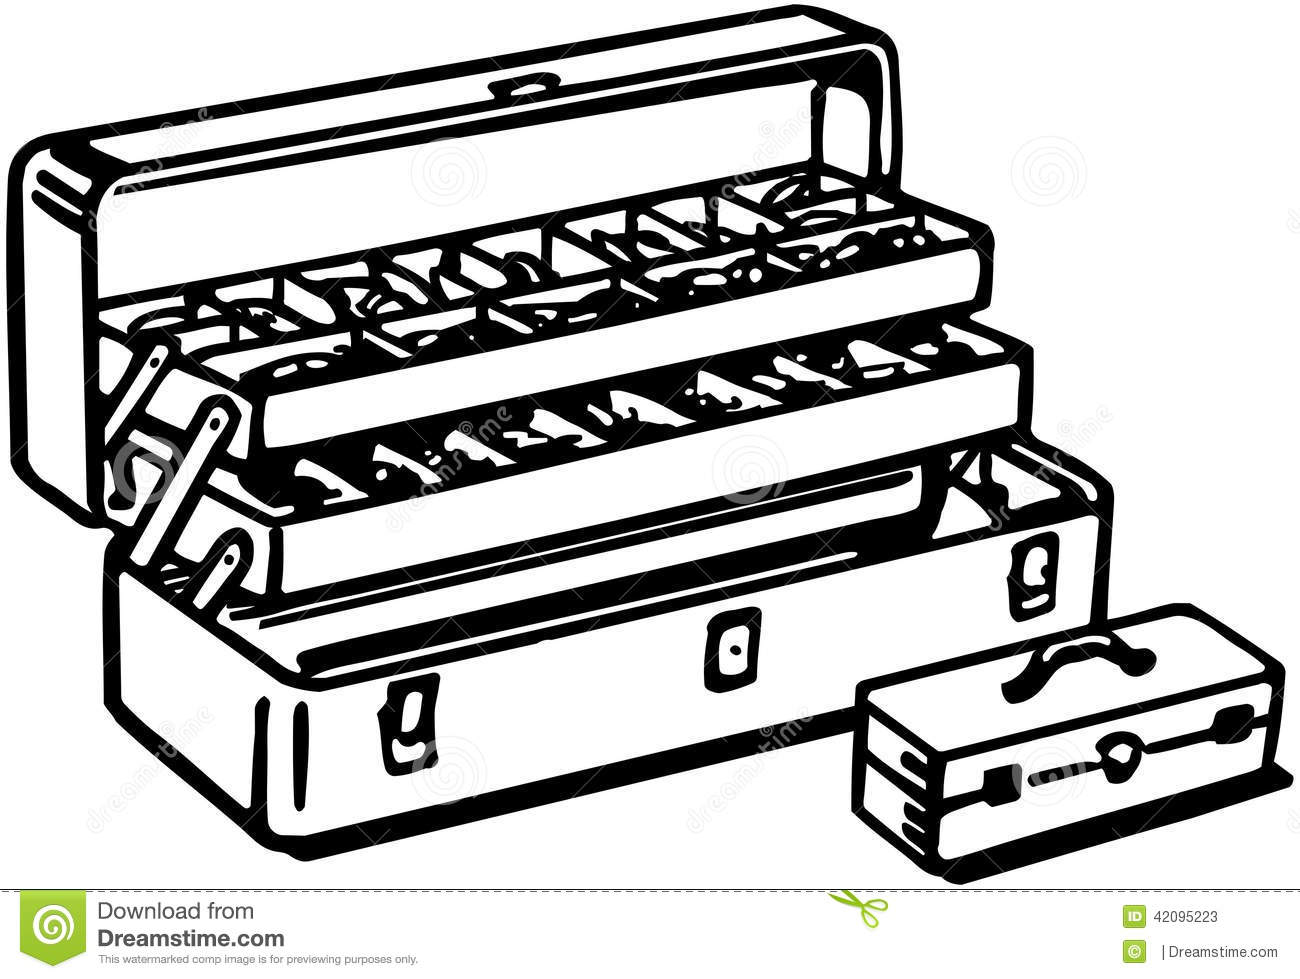 Tackle Box stock vector. Illustration of sporting